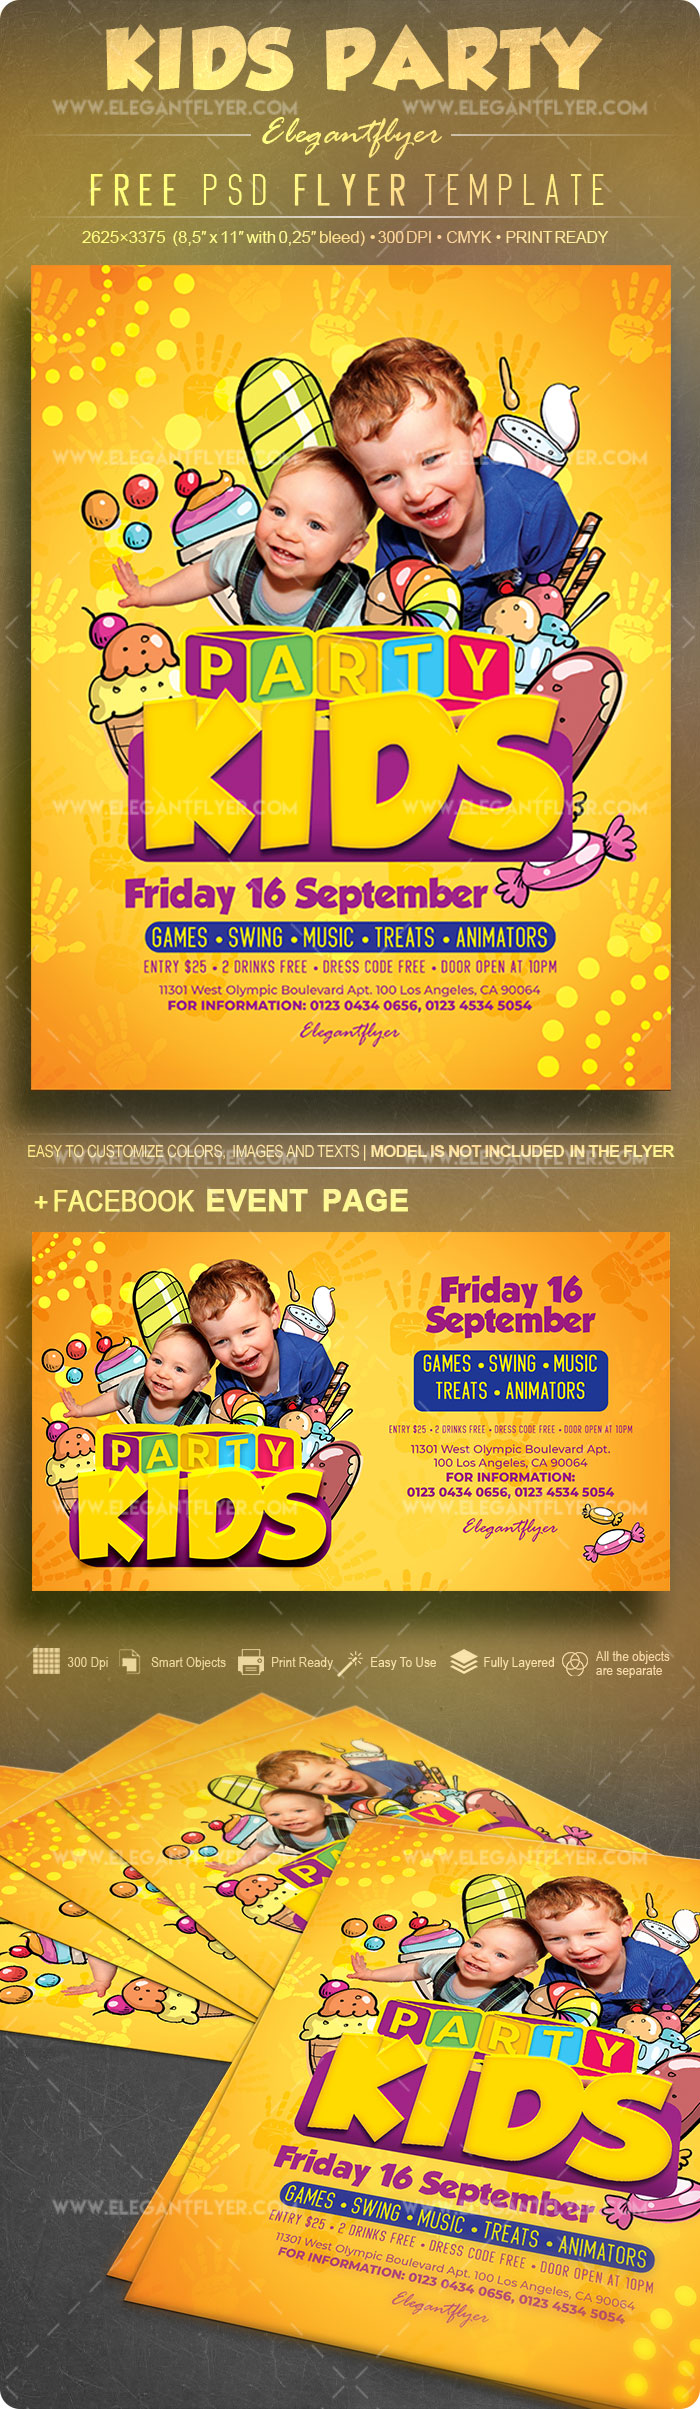 Kids Party – Free Flyer PSD Template